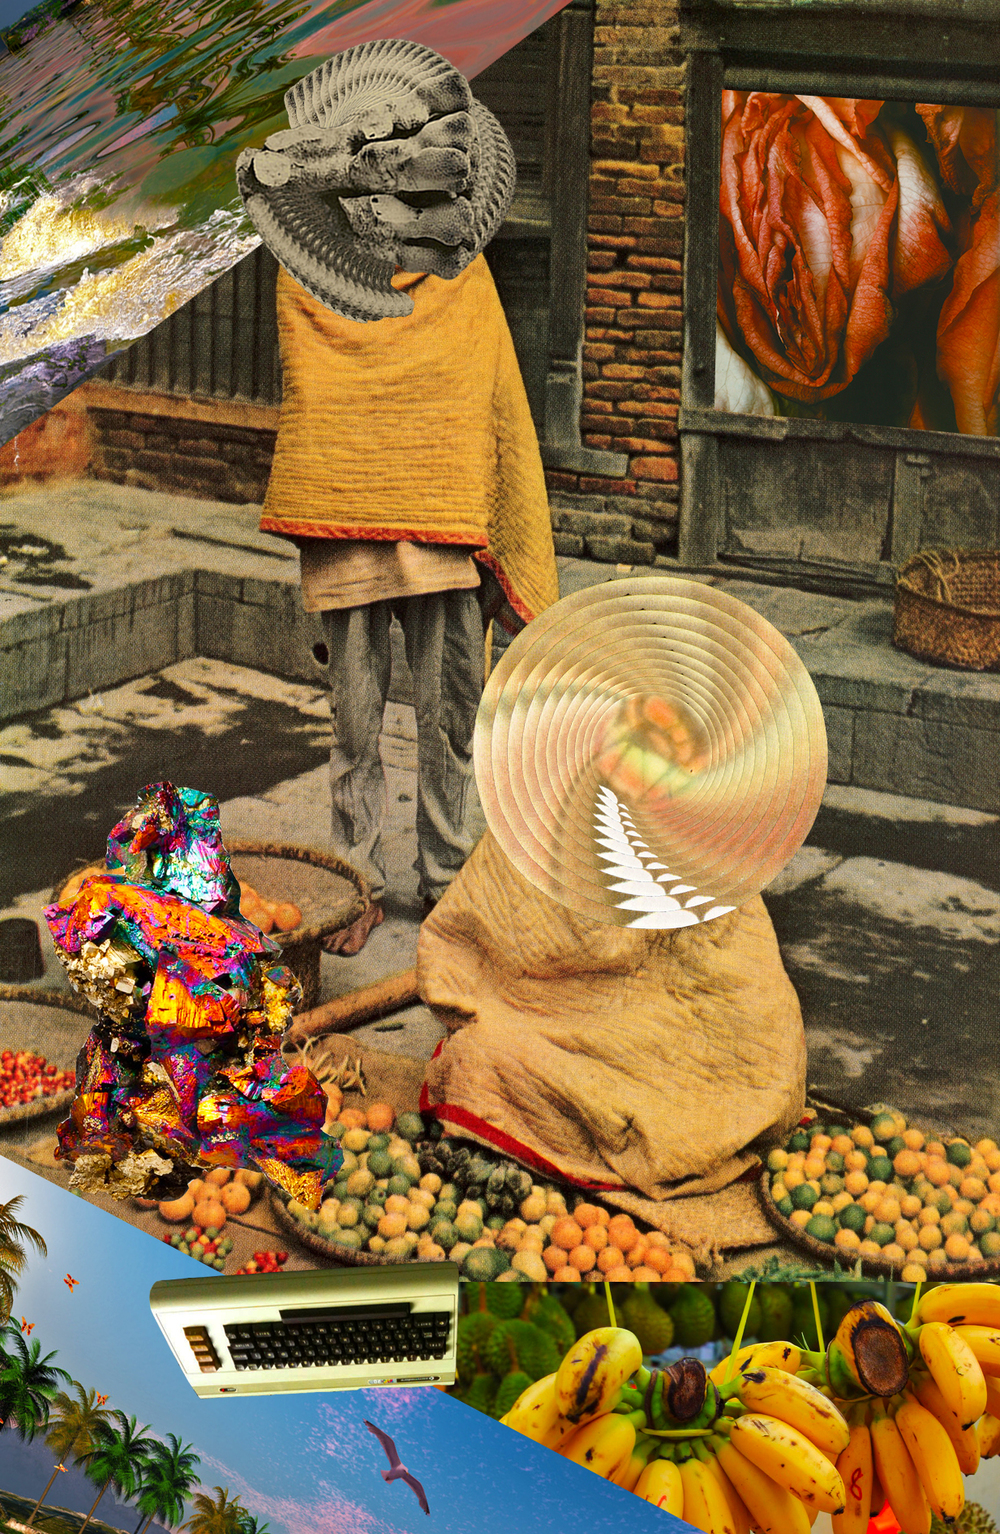 Cyber Vegies [collage, 2015]